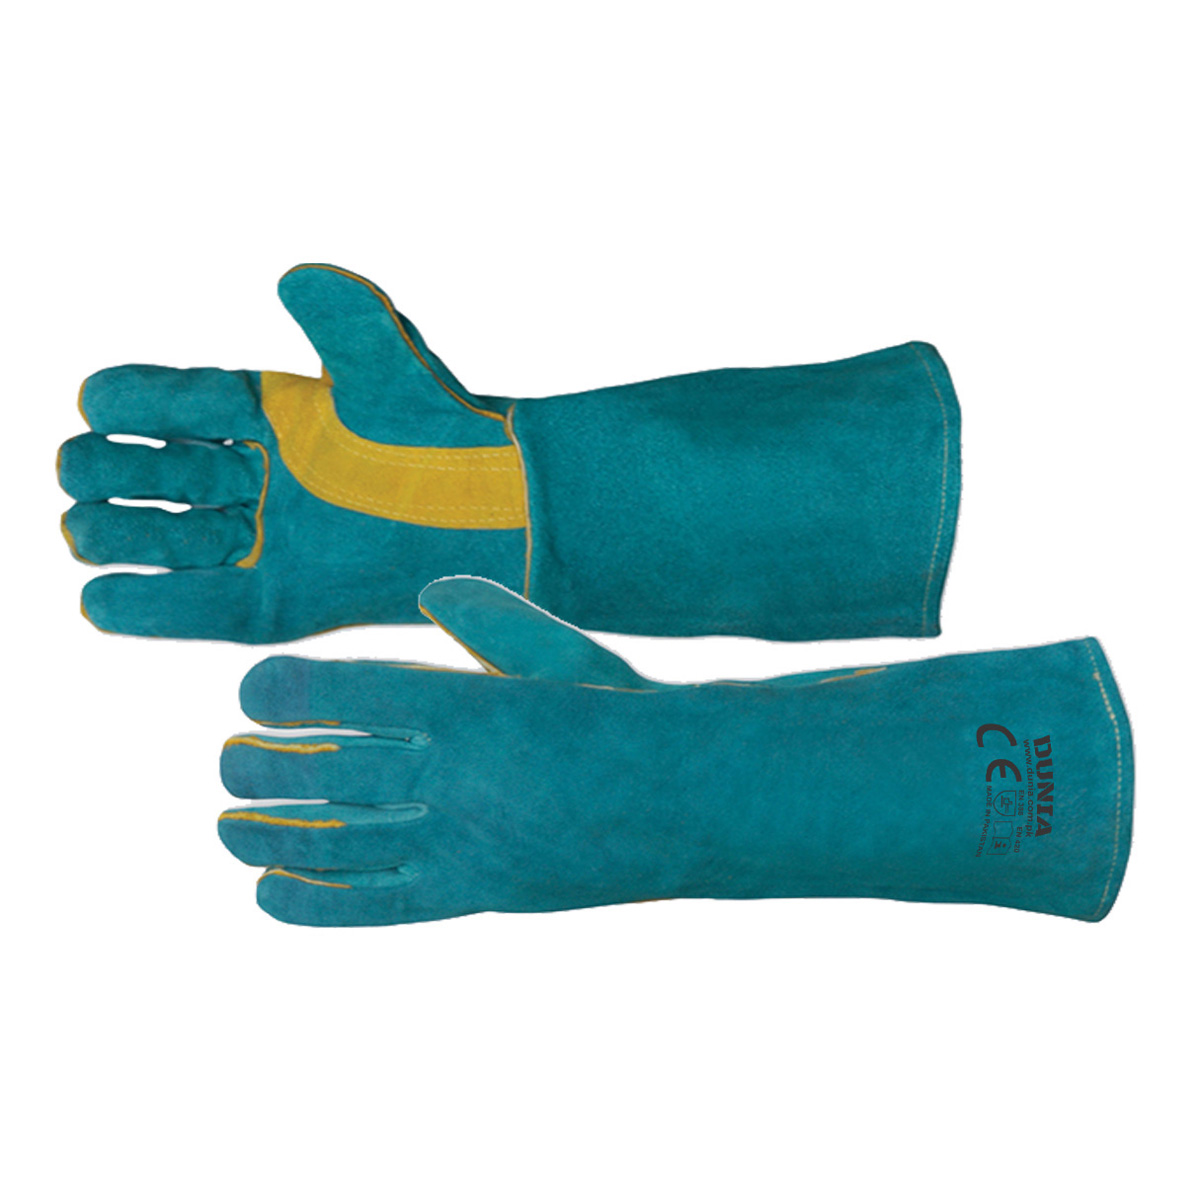 DTC-1021 Green Welder Gloves Hockey Palm